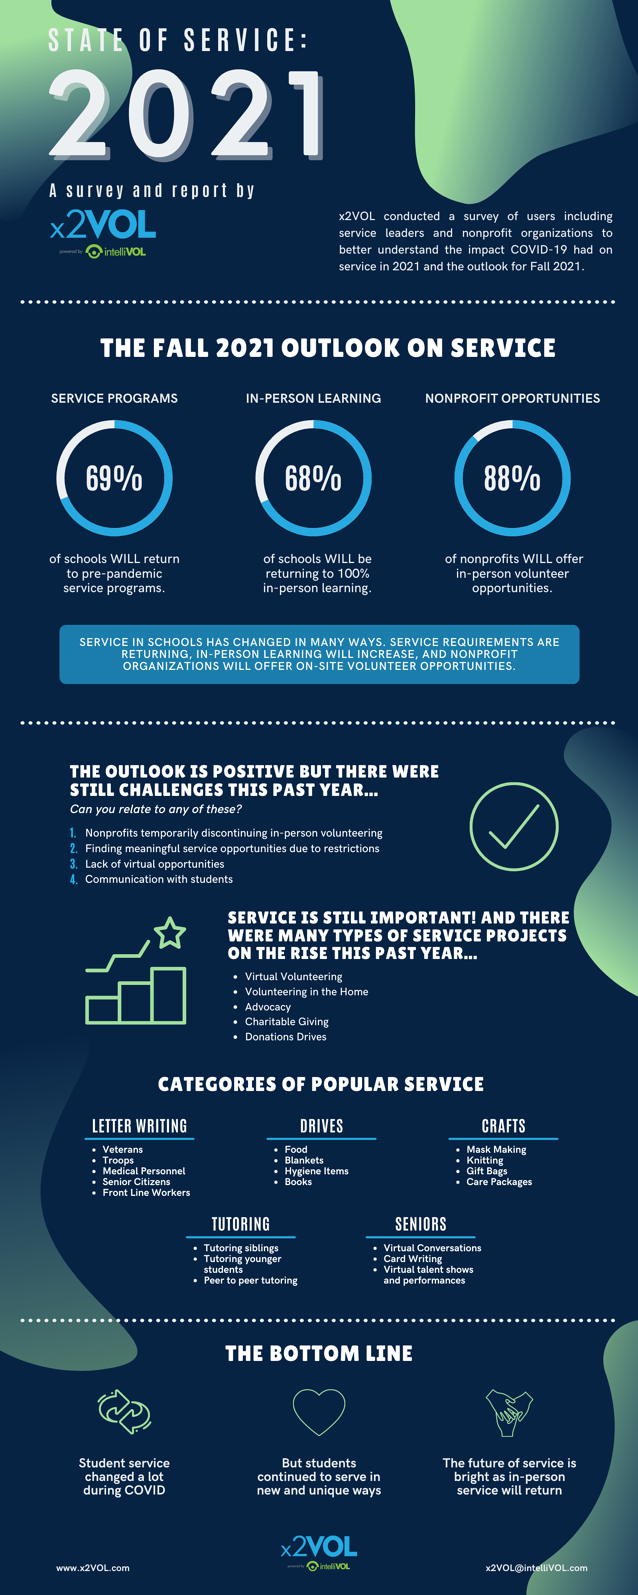 State of Service 2021 Infographic